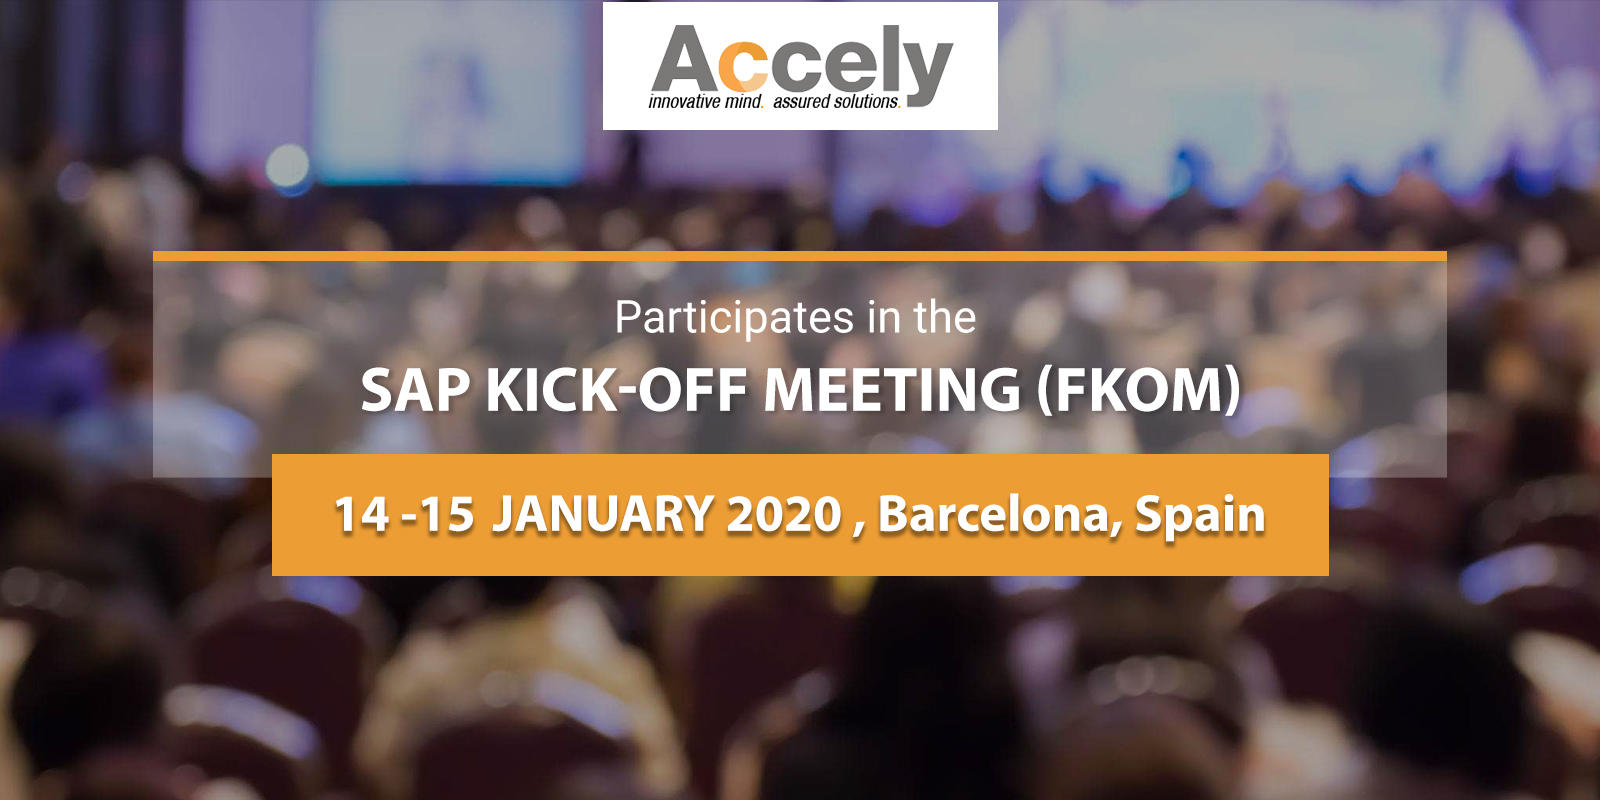 Accely Participates in the SAP Kick-off Meeting (FKOM) 2020 in Barcelona